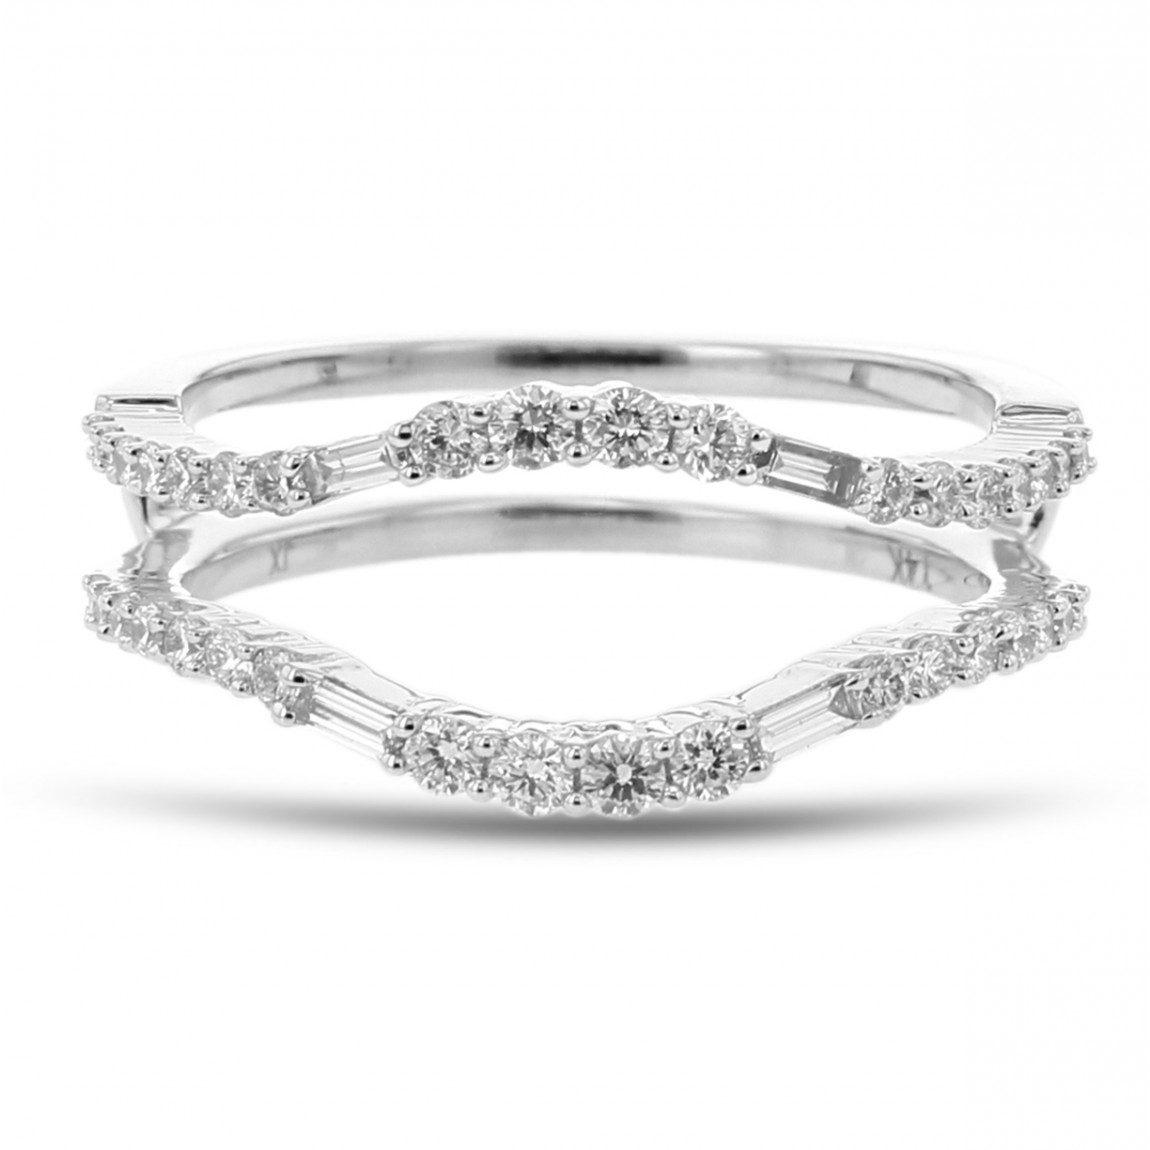 Diamond Cradle Wedding Band, Ring Enhancer, Baguette And Round, 14k White Gold, (View 7 of 25)